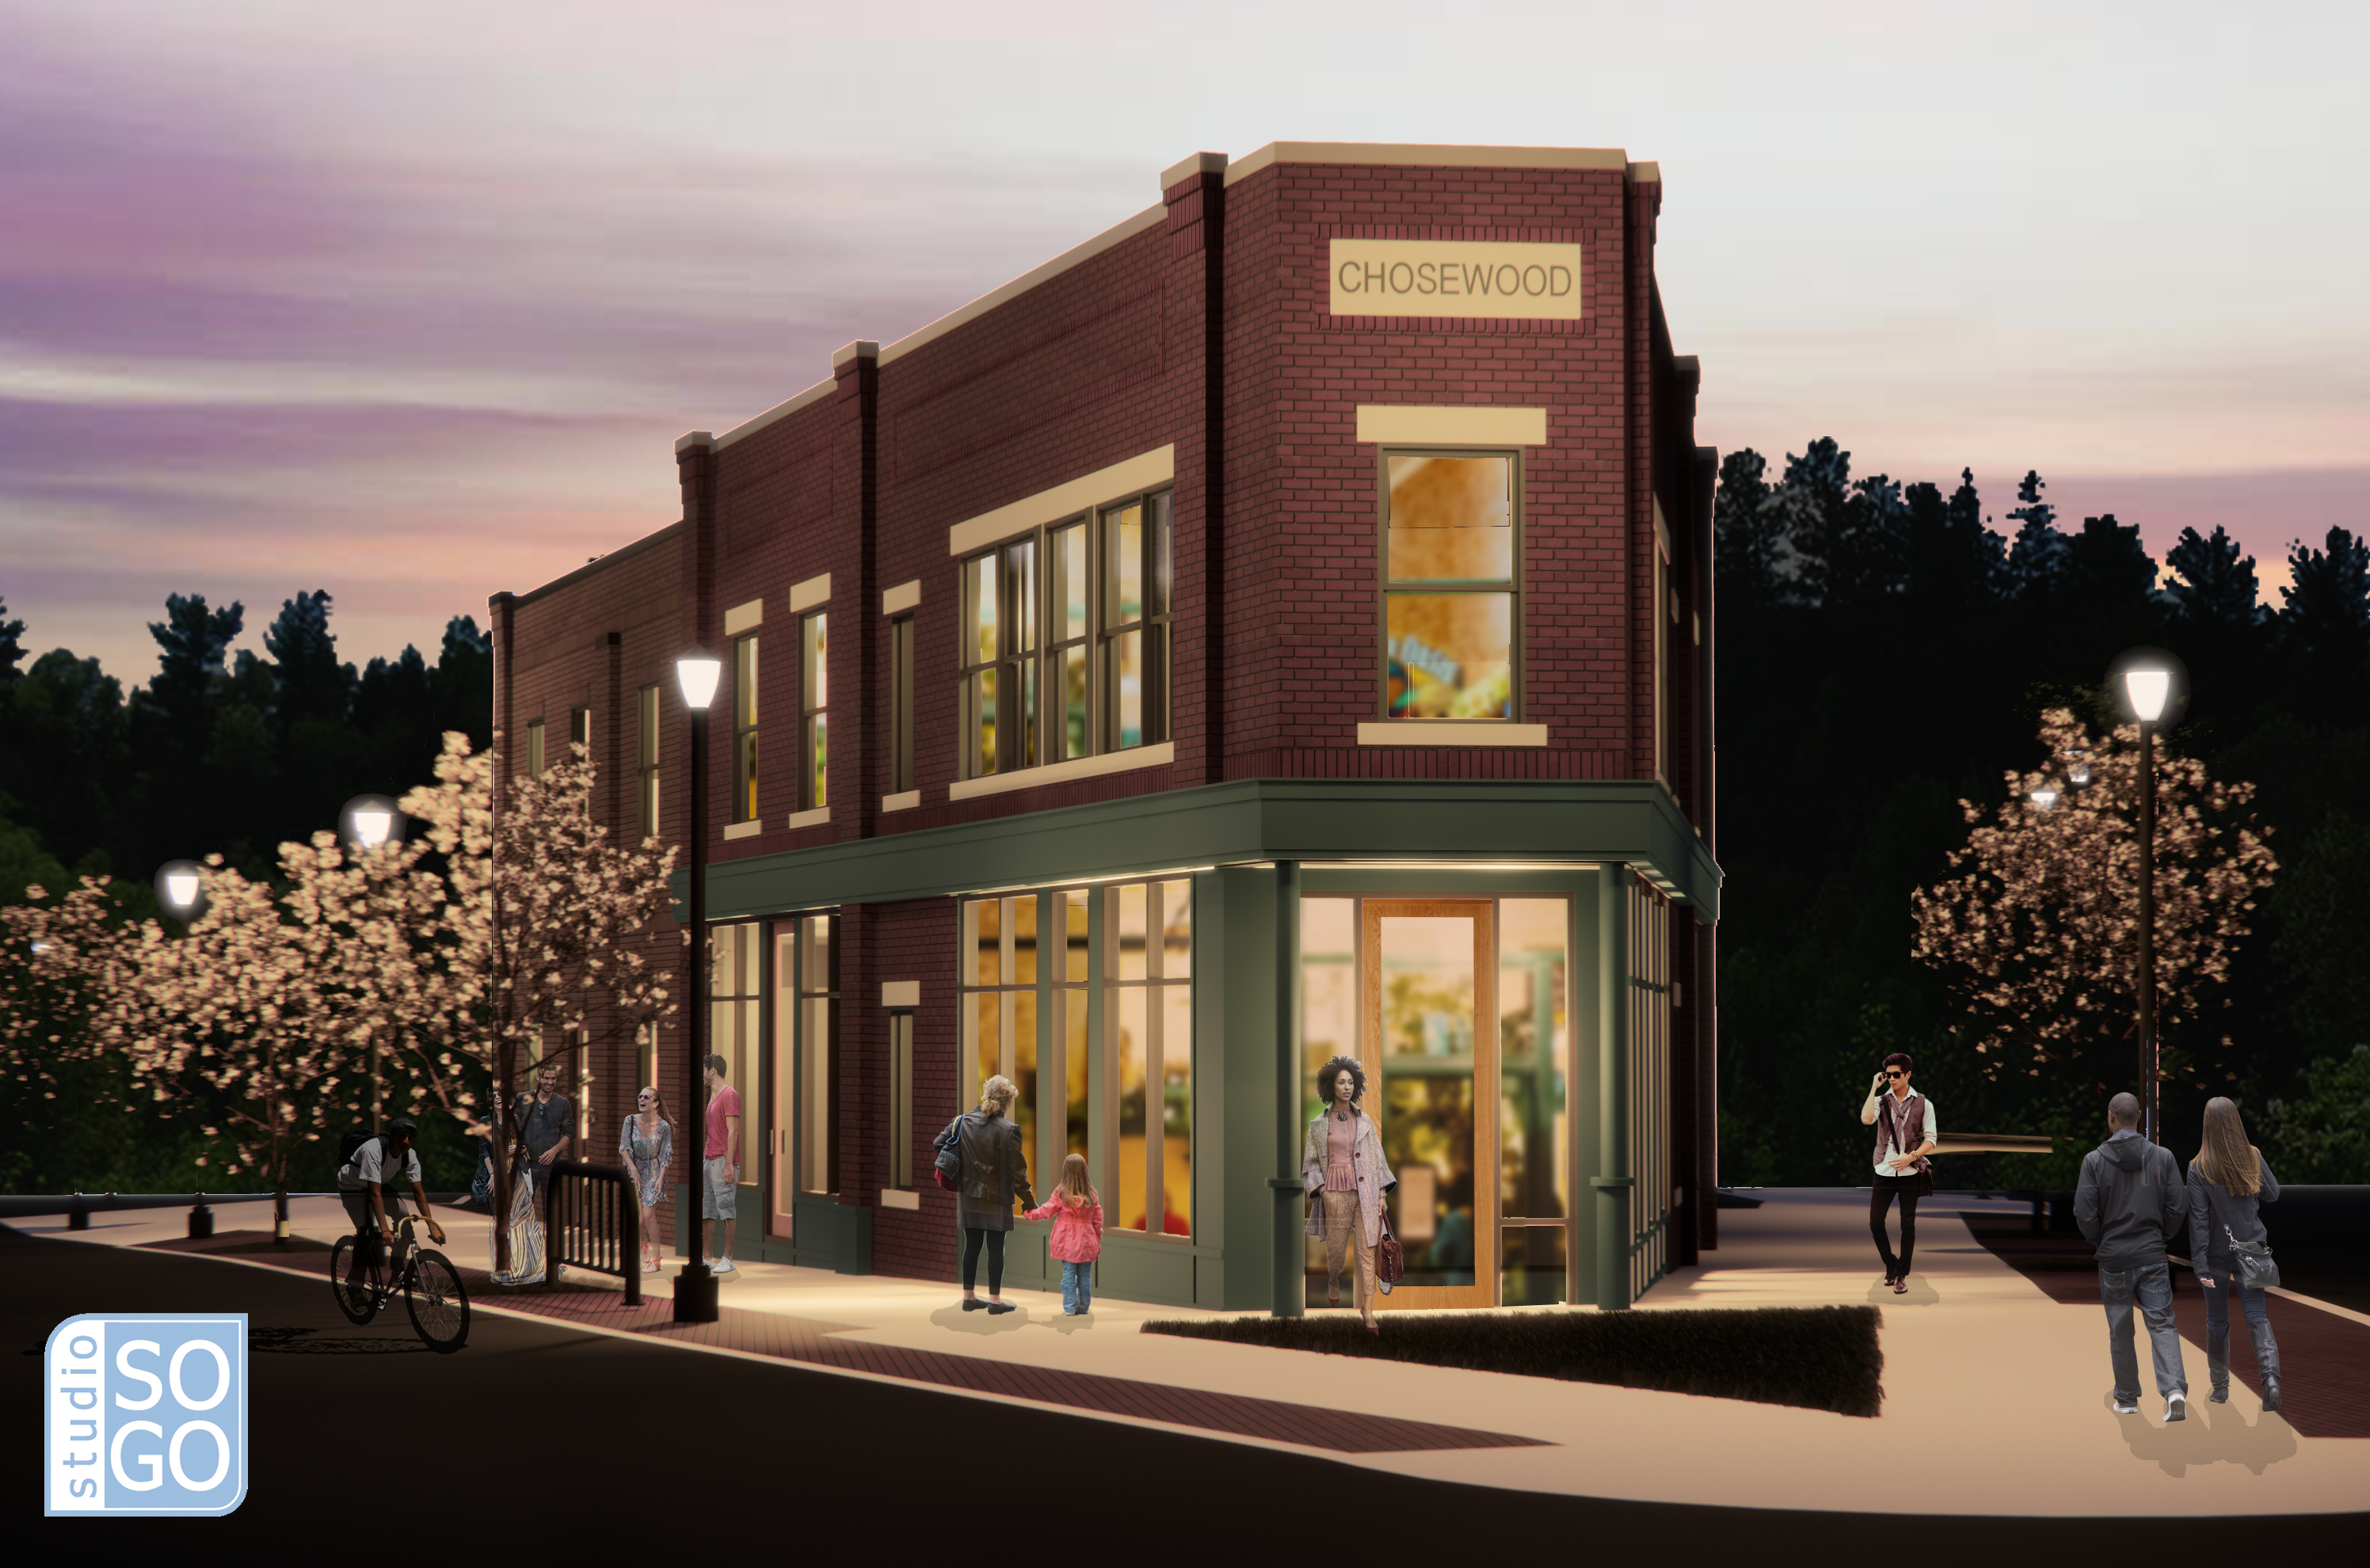 Rookie developer plans Chosewood Park mixed-use build with 'affordable' housing